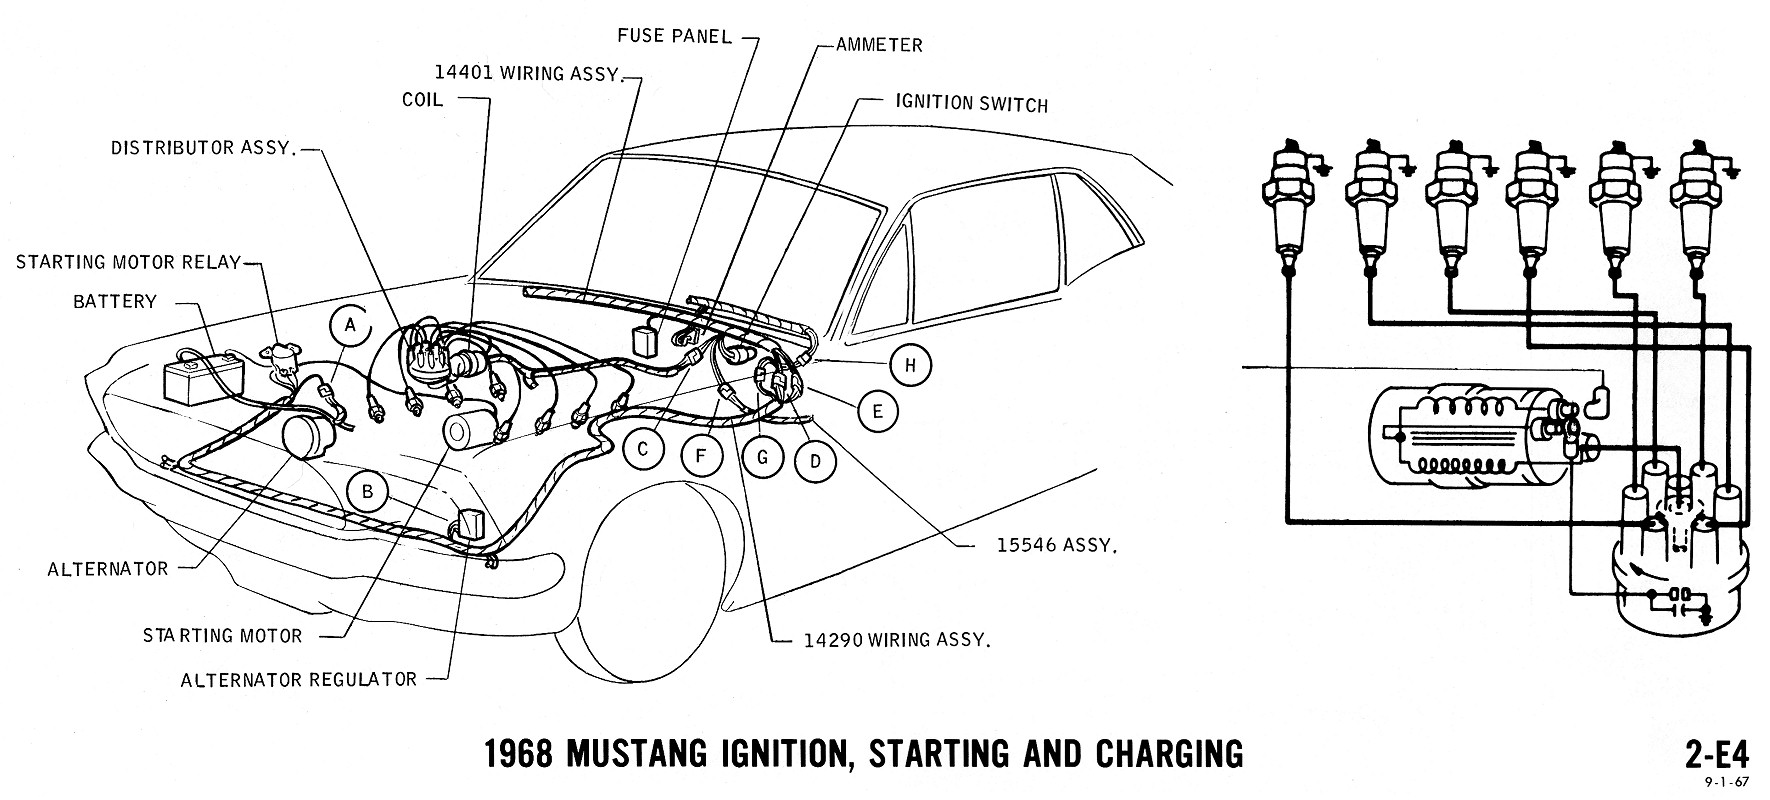 1968 mustang wiring diagram ignition starting charging 2 79 mustang engine wiring diagrams on 79 download wirning diagrams 1966 mustang ignition switch wiring diagram at n-0.co